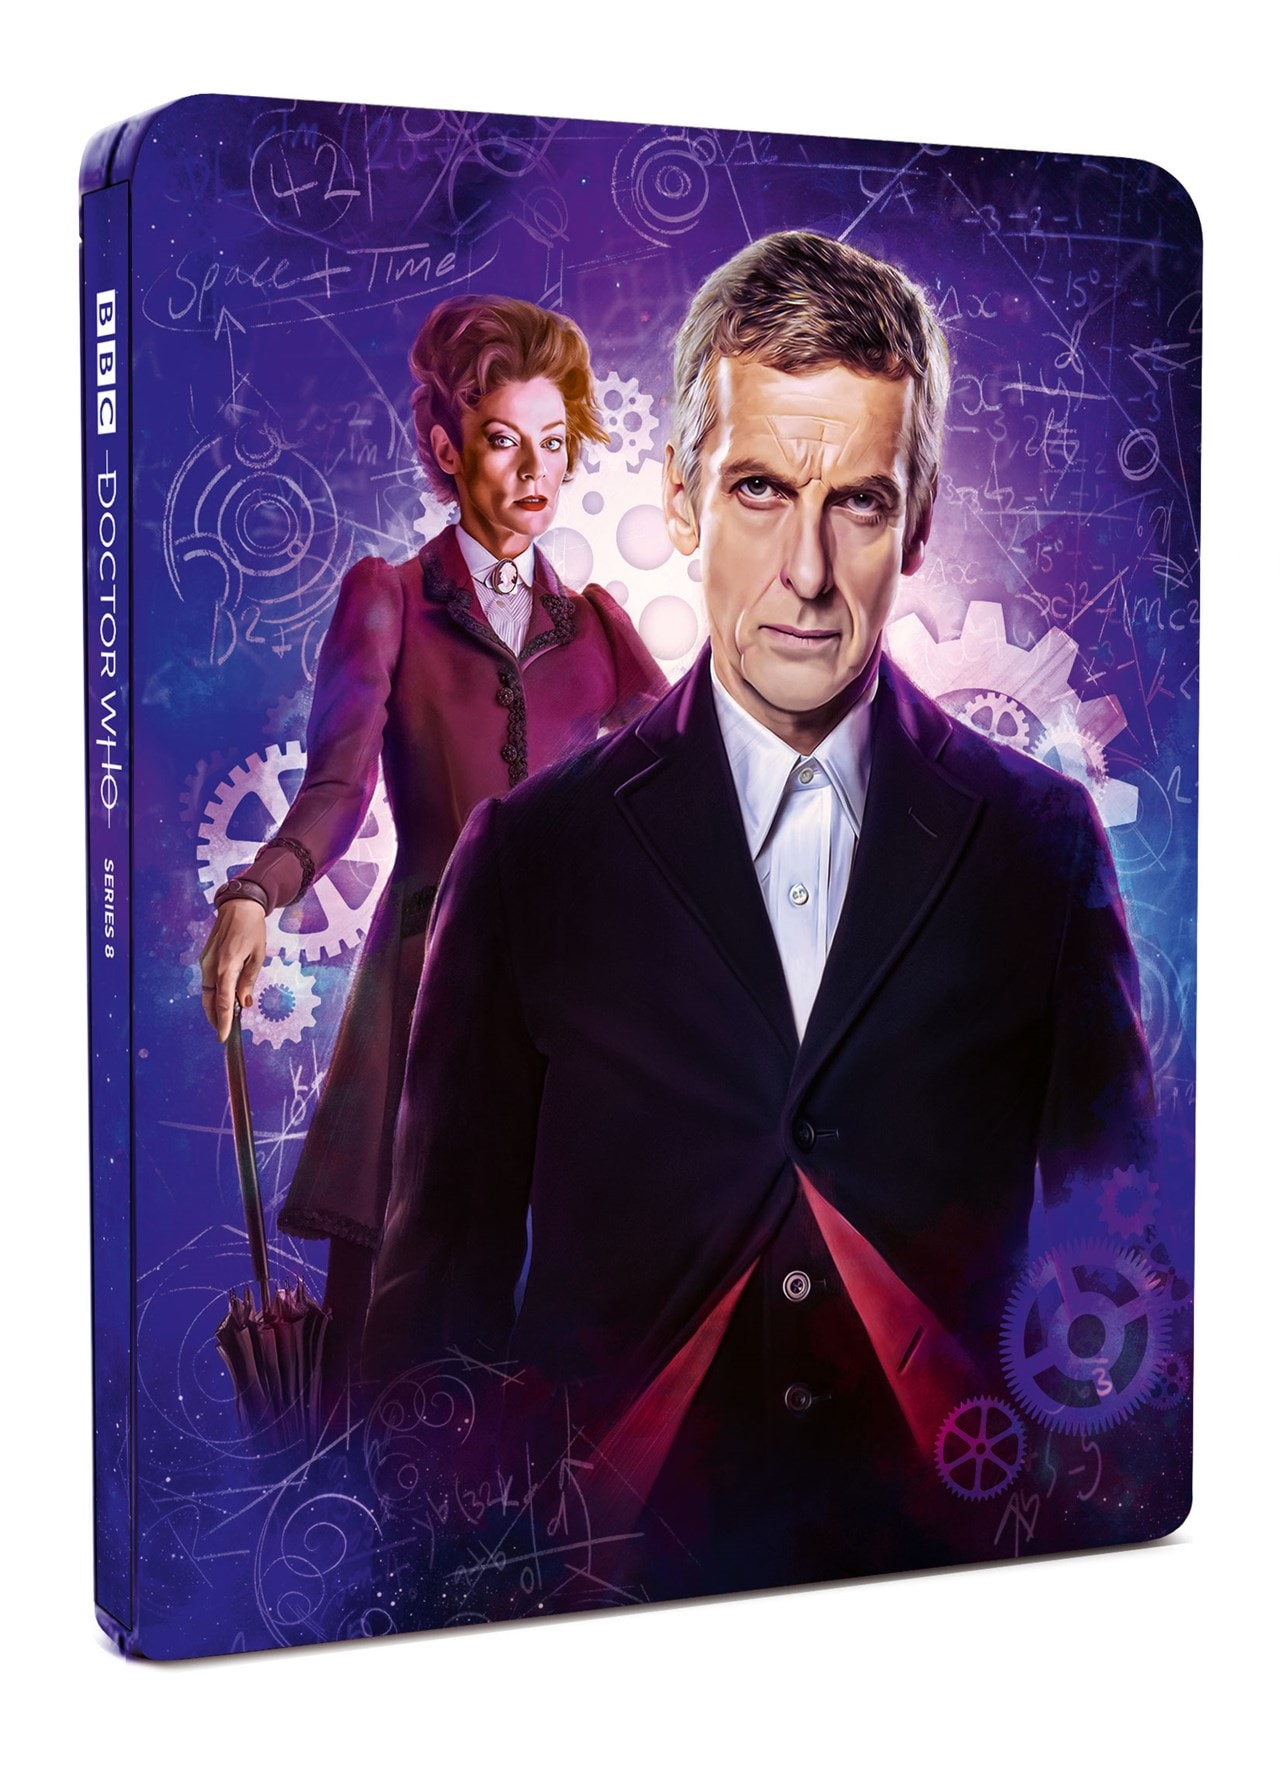 Doctor Who: The Complete Eighth Series Limited Edition Steelbook - 1